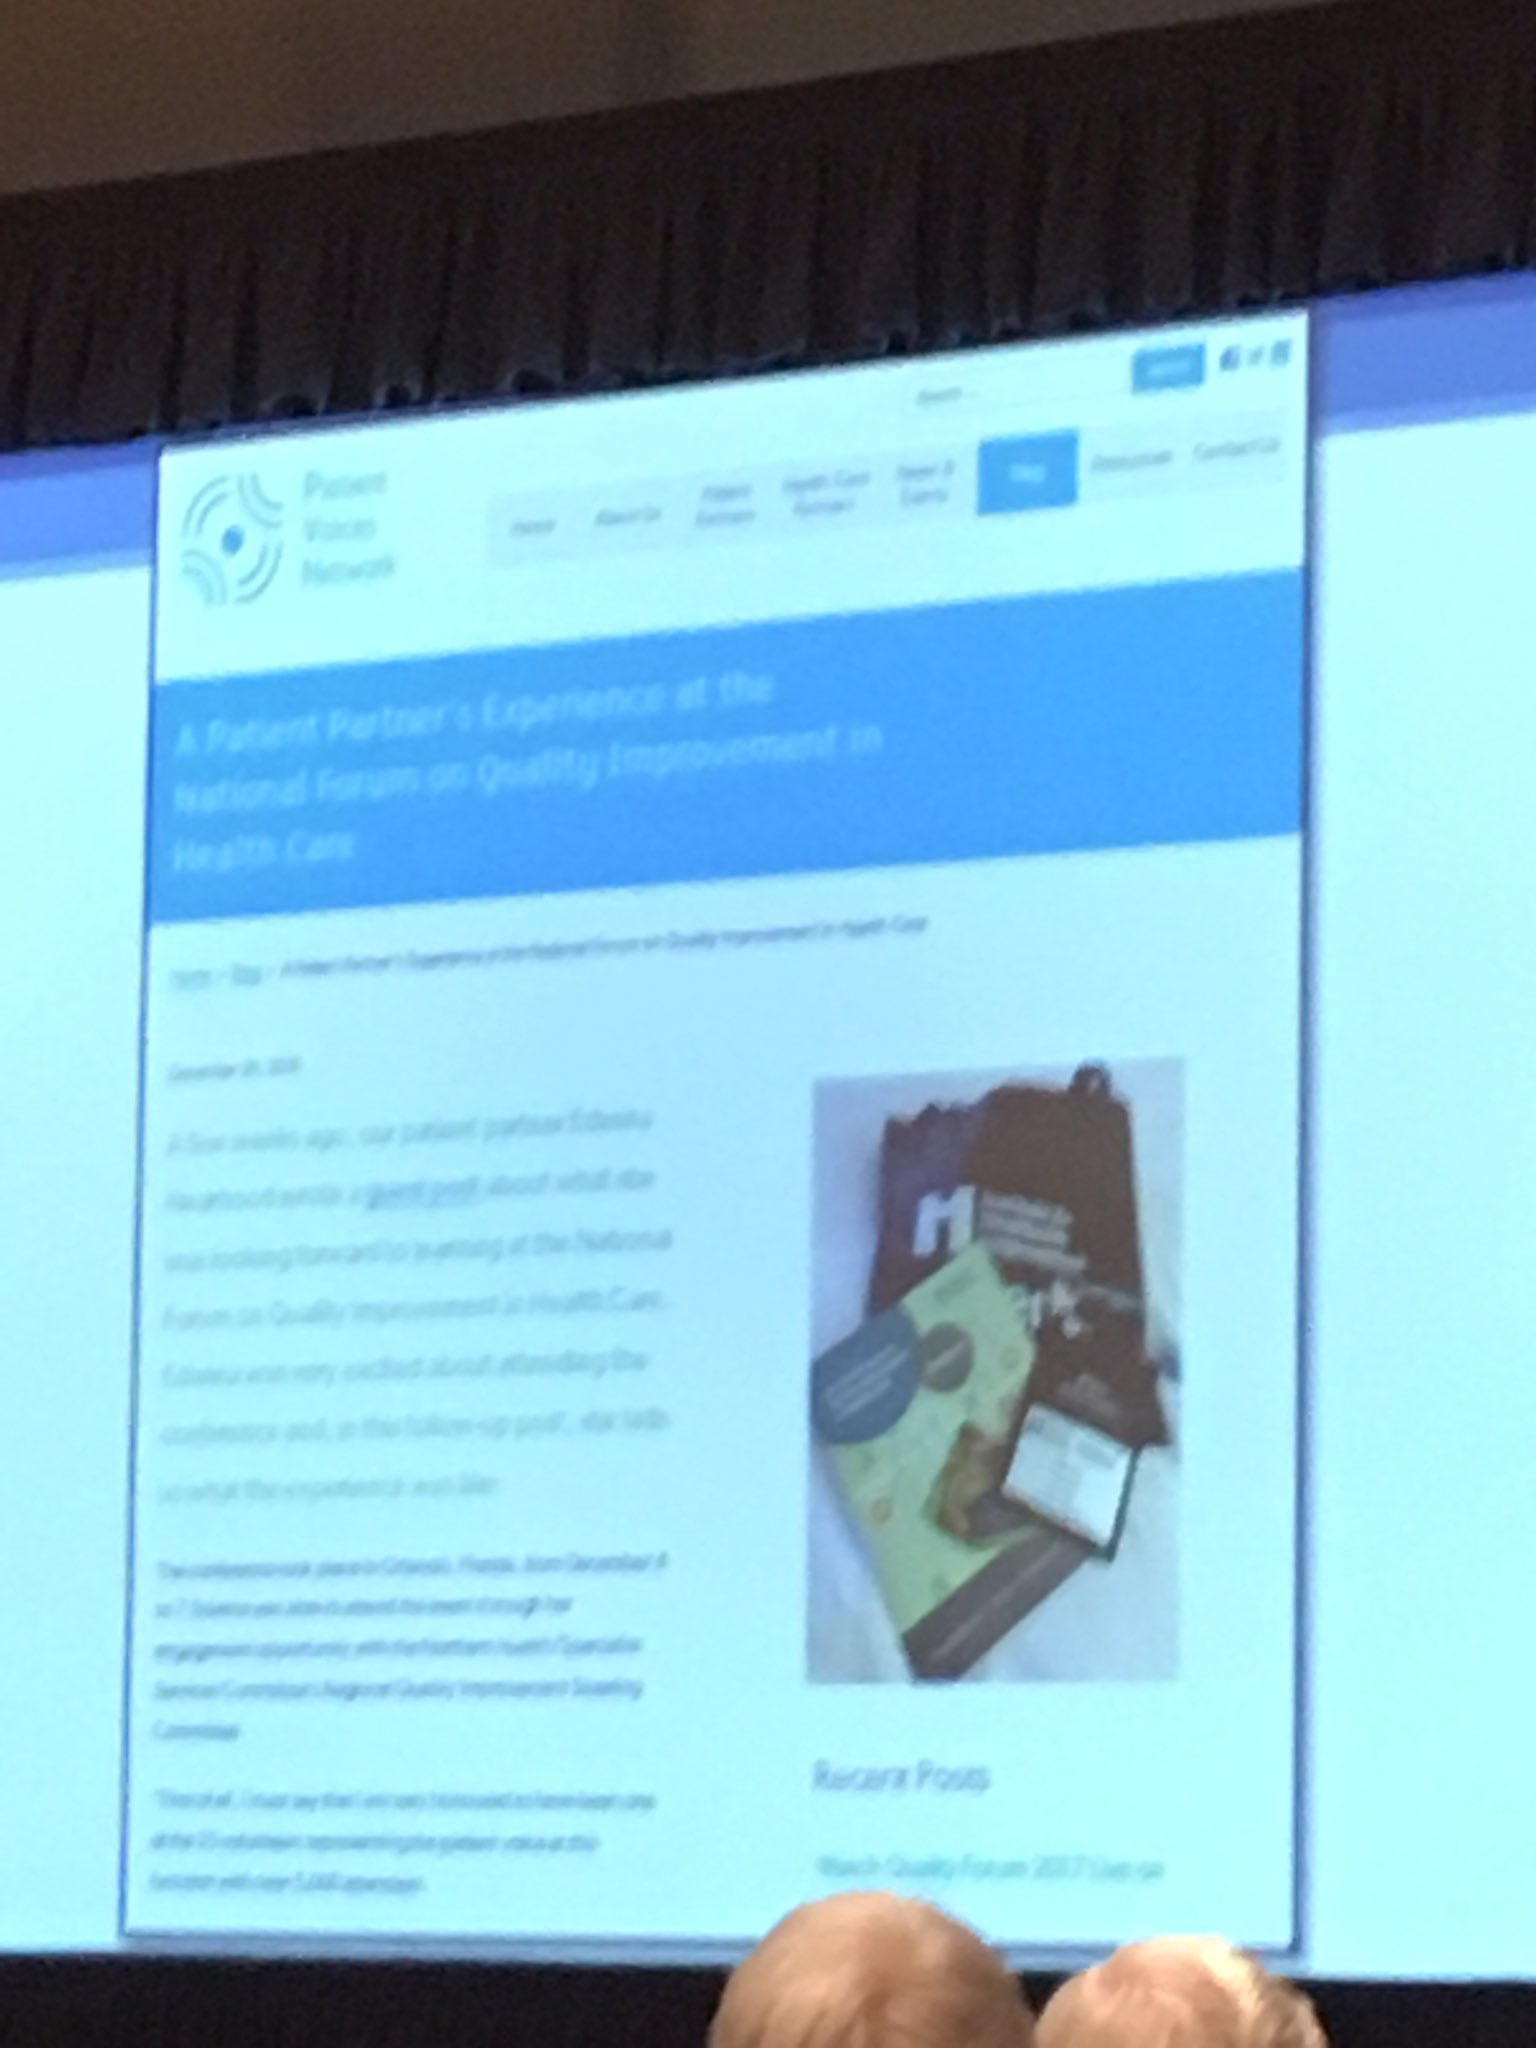 Woohoo. Shoutout from #SSCBC for the great work and blog by @PatientVoicesBC Member Edwina and #ClinicianAcademy Thank You! #QF17 #JCC17 https://t.co/awiCsGQKb3